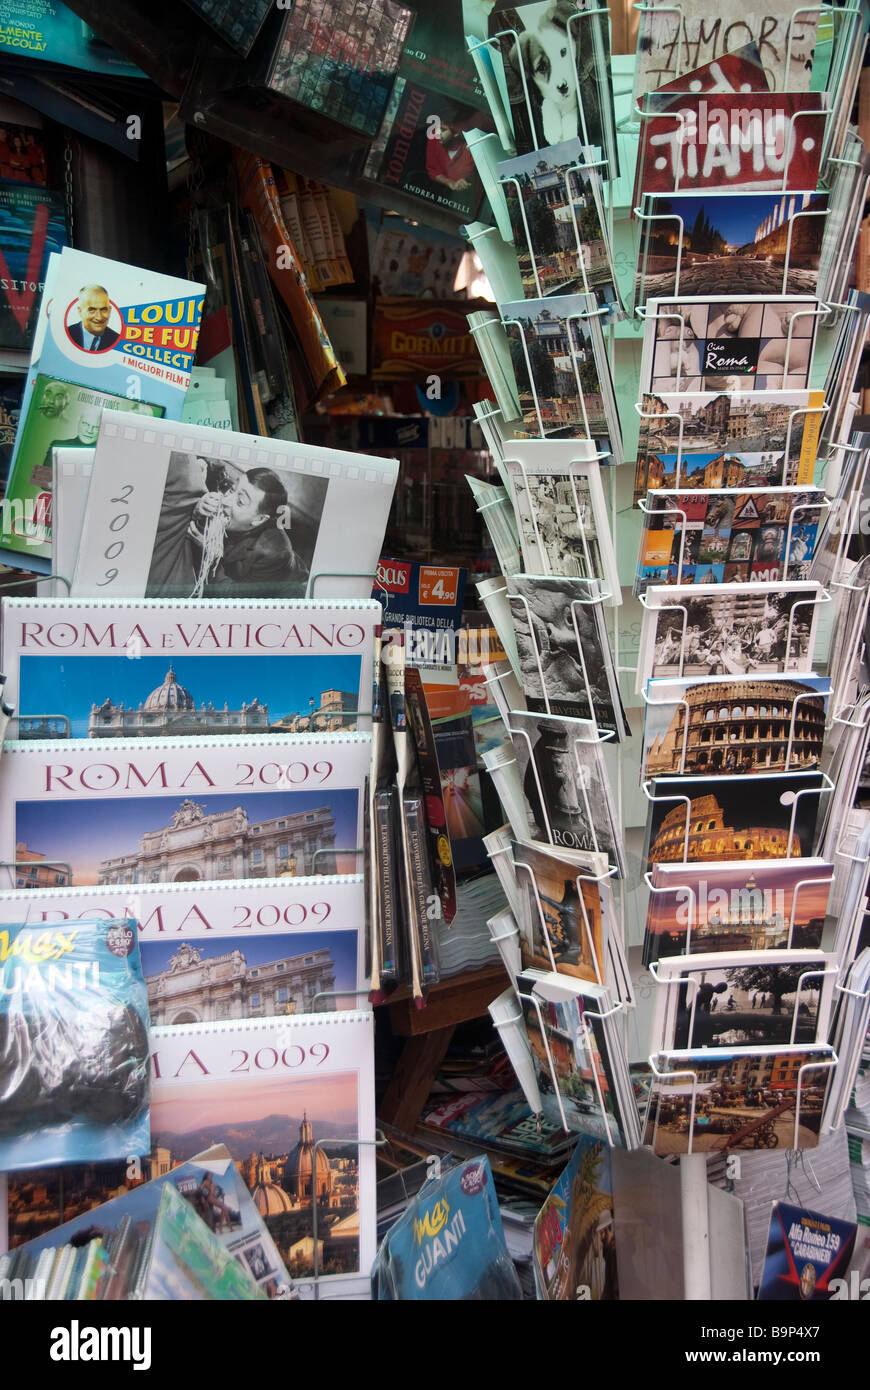 Postcards in a newstand in Rome - Stock Image